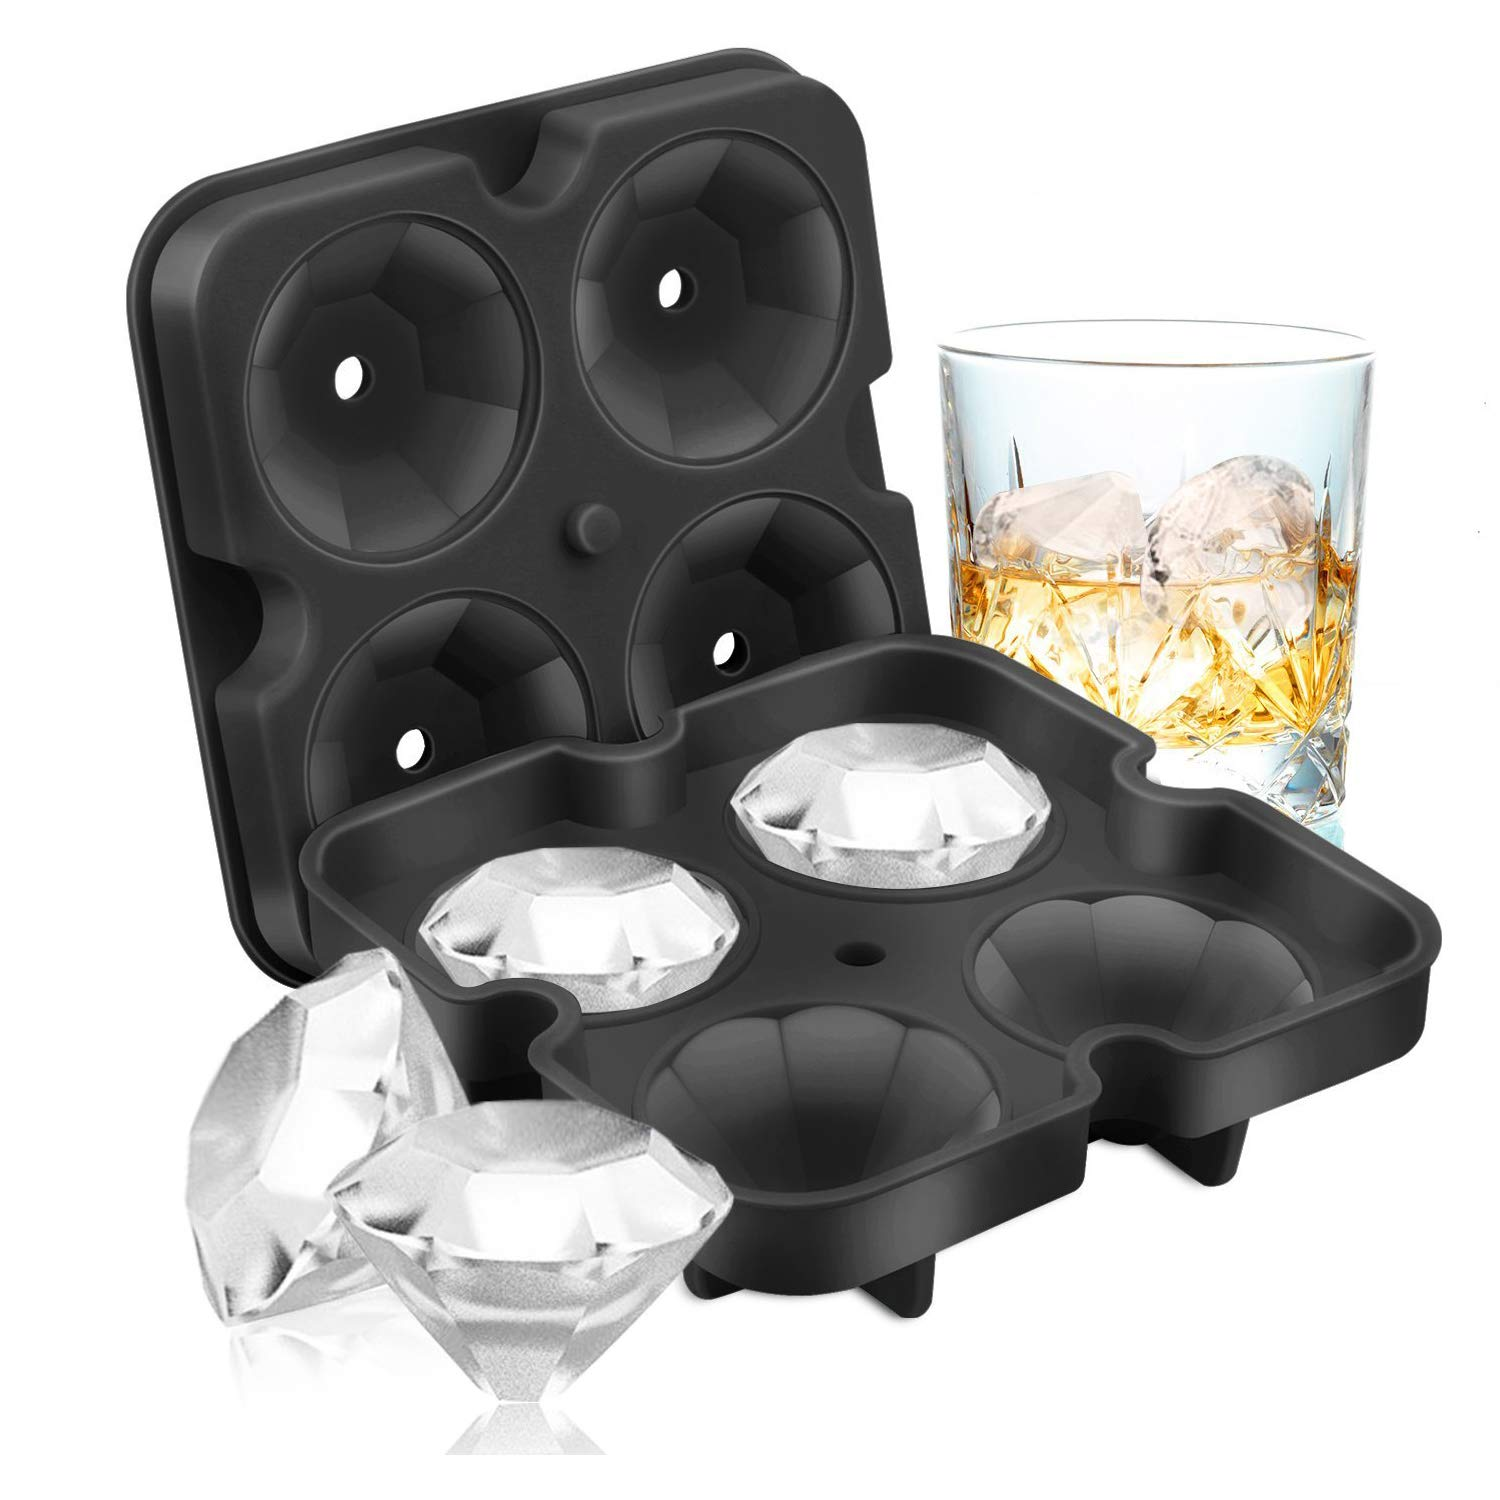 Ice Cube Trays, Diamond-Shaped Fun Ice Cube Molds BPA Silicone Flexible Ice Maker for Chilling Whiskey Cocktails (Black)